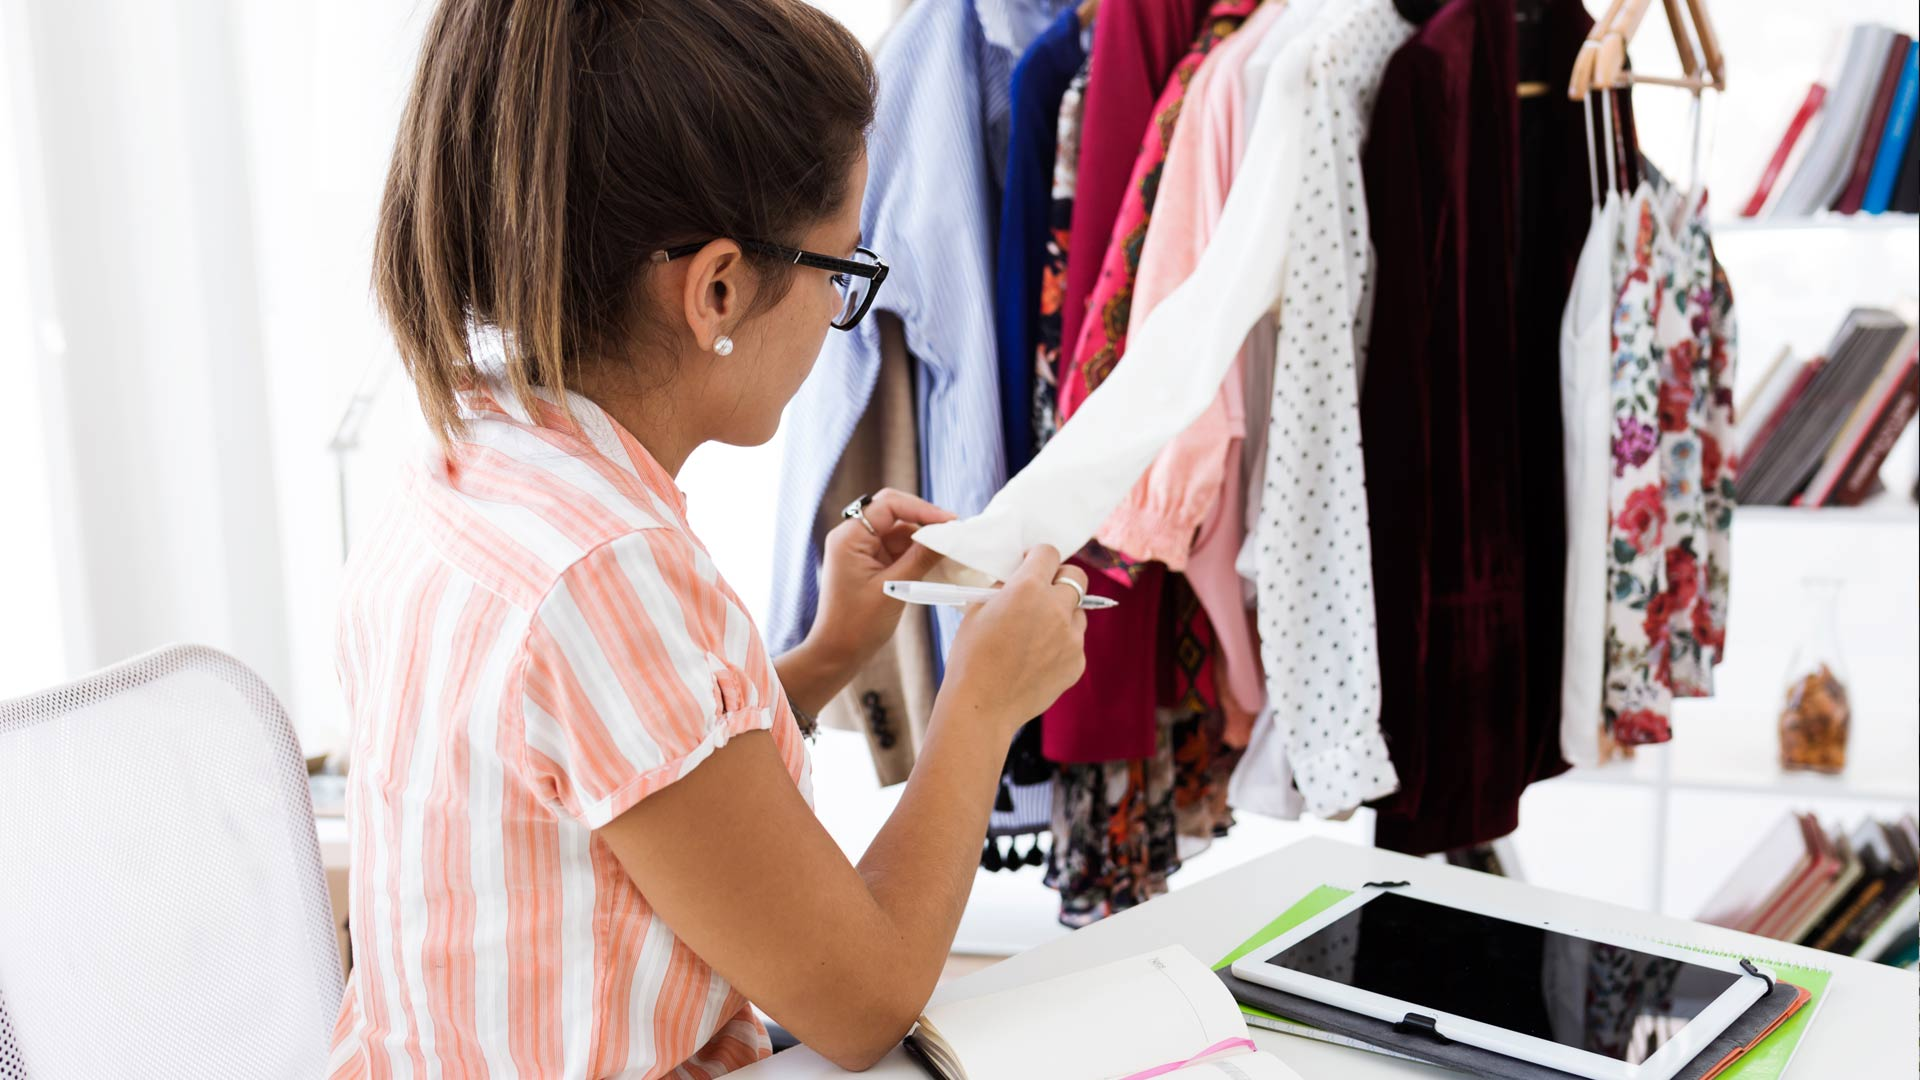 retail-clothes-girl-tablet.jpg